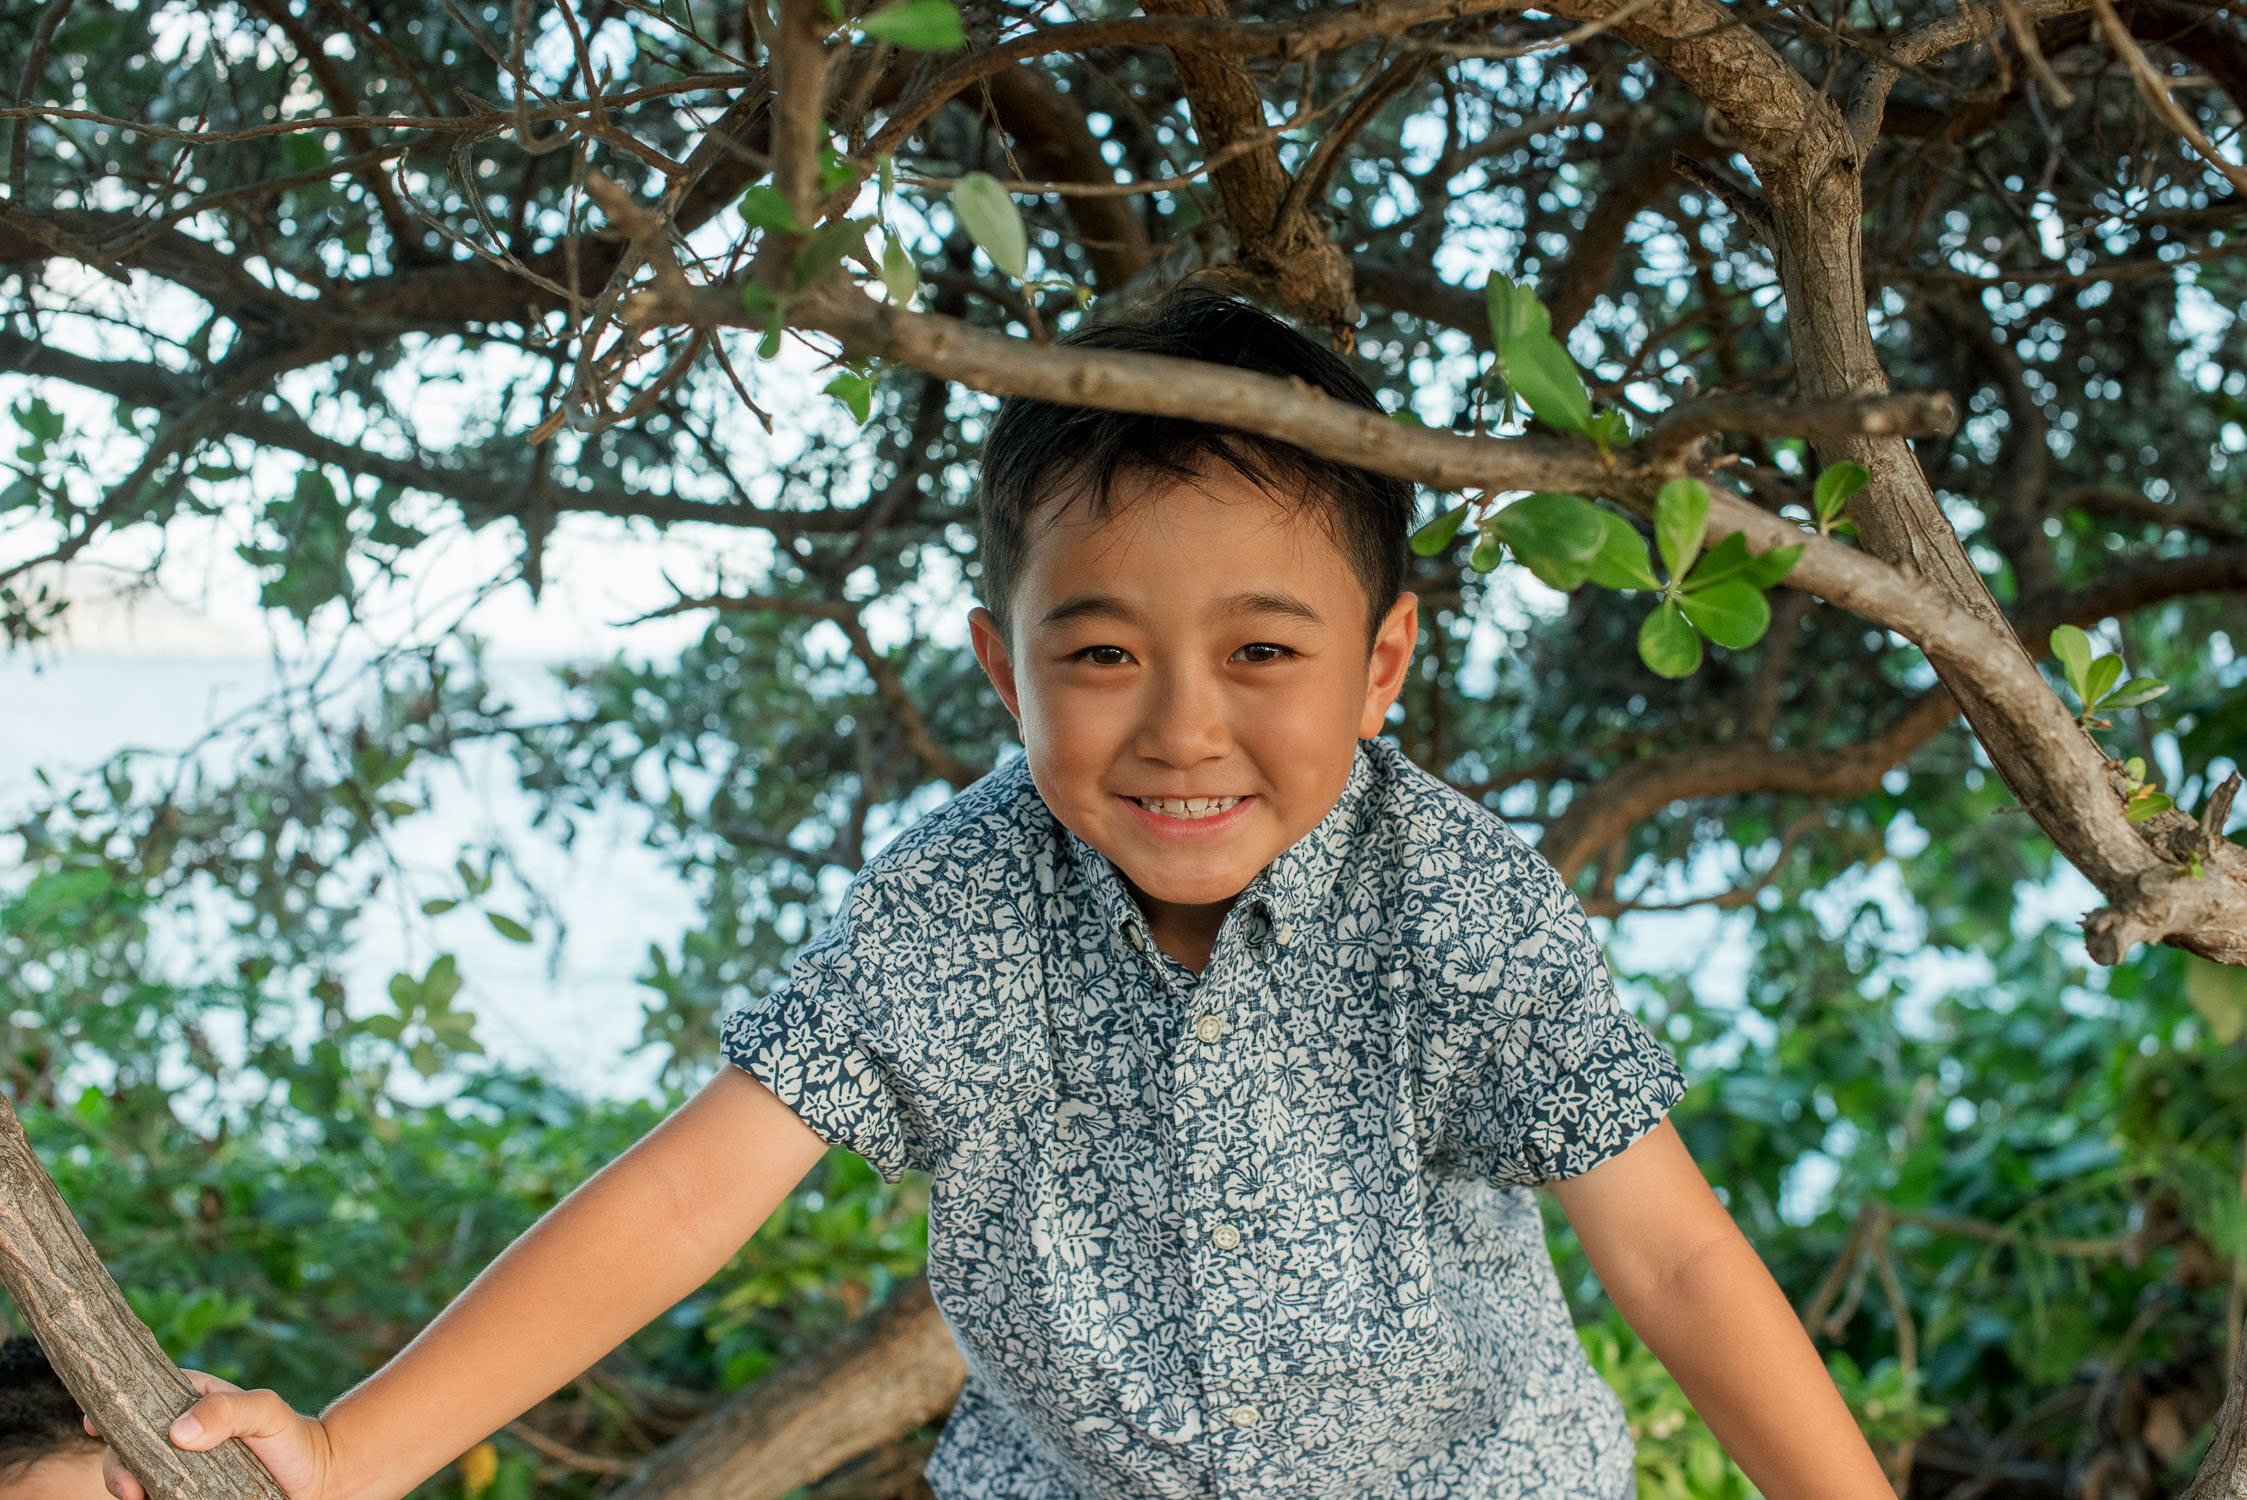 Young boy in tree